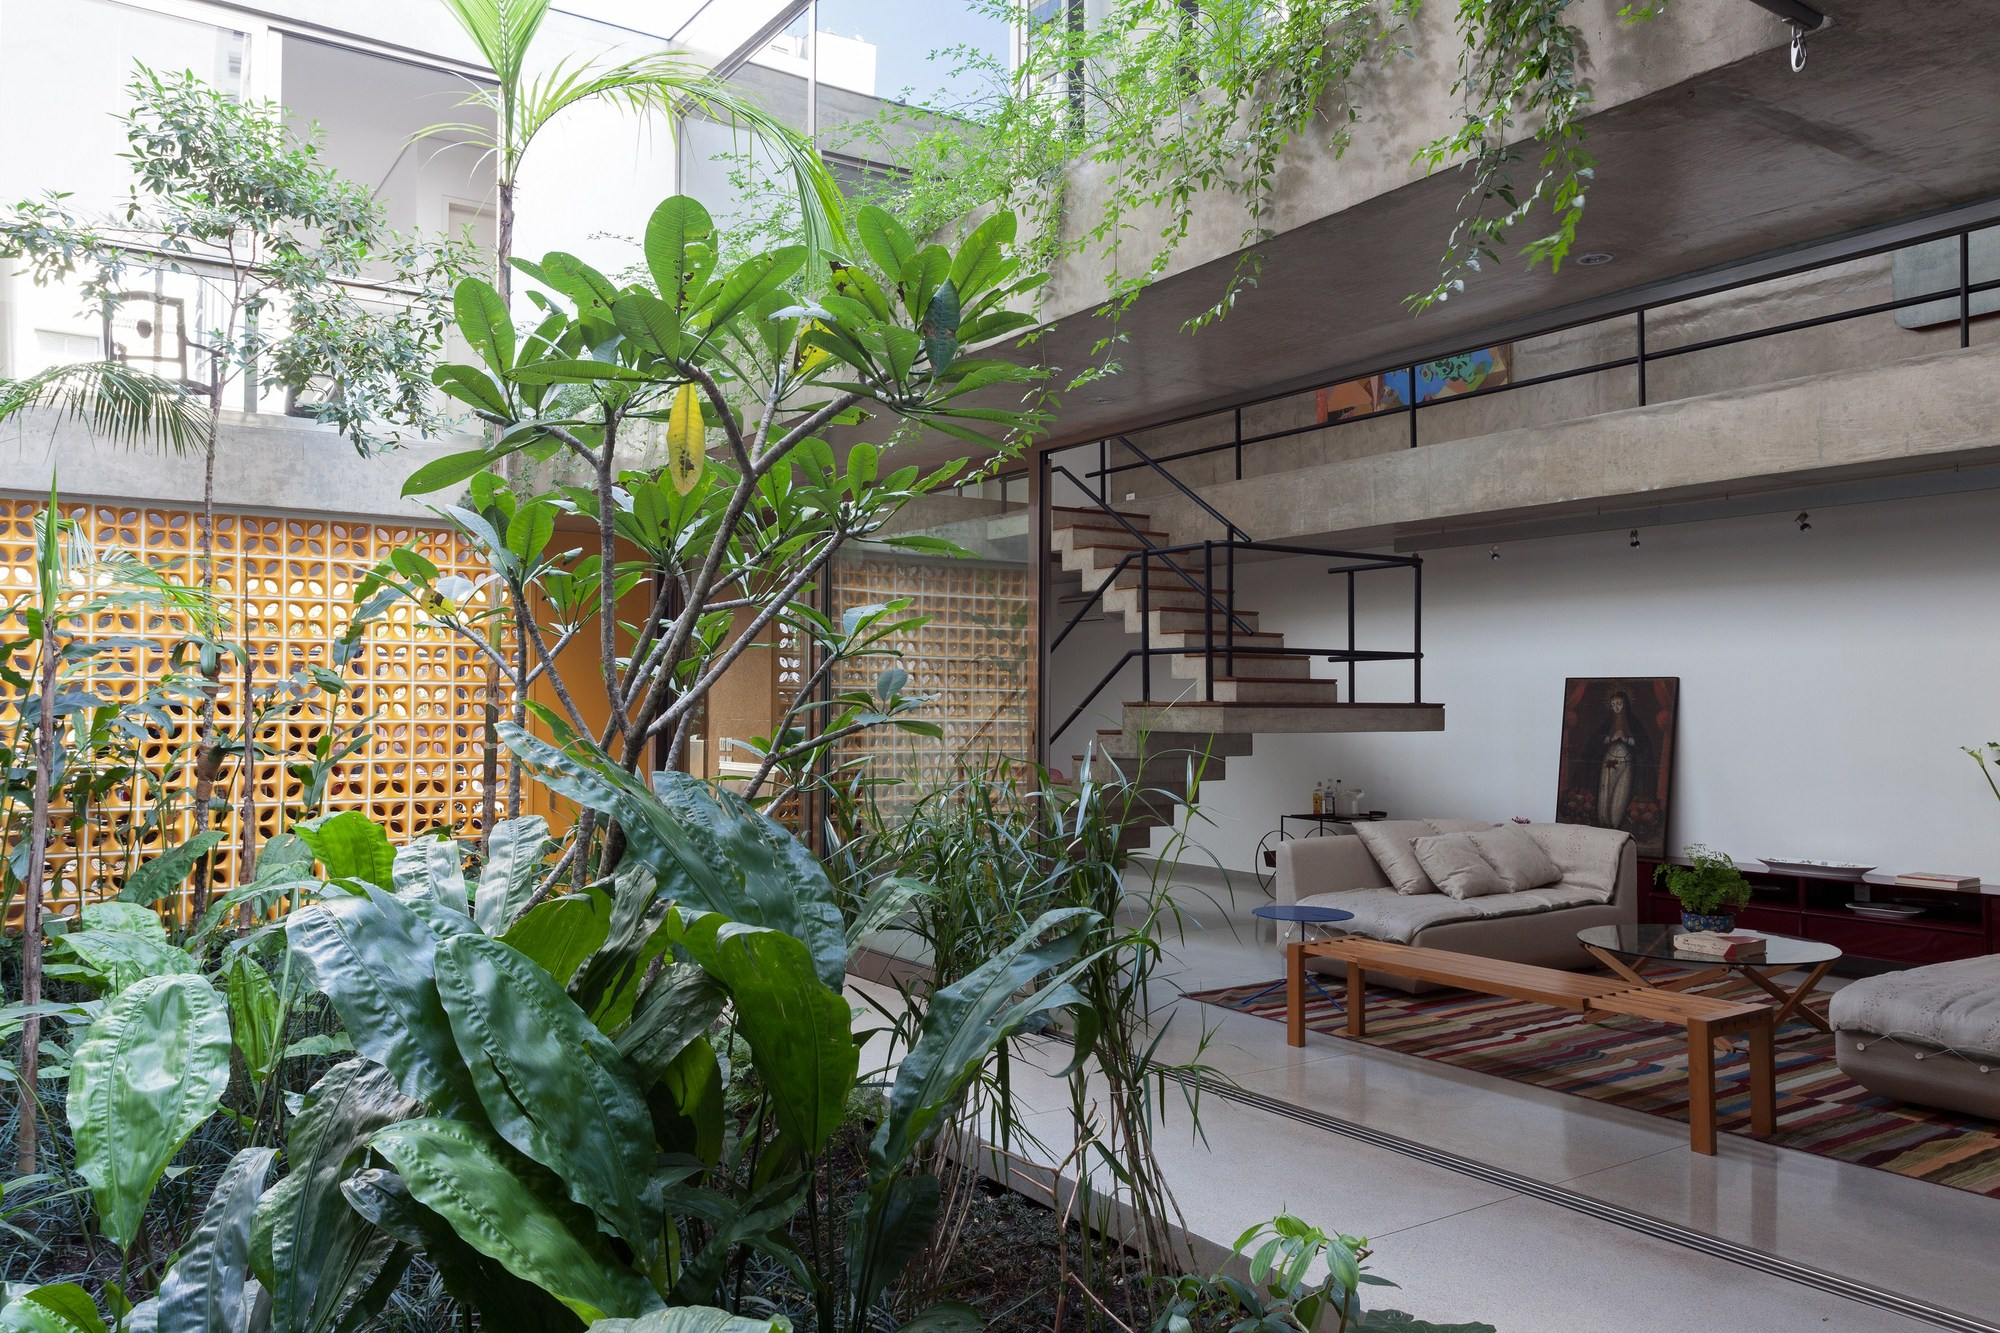 Jardins house cr2 arquitetura archdaily for Design jardins